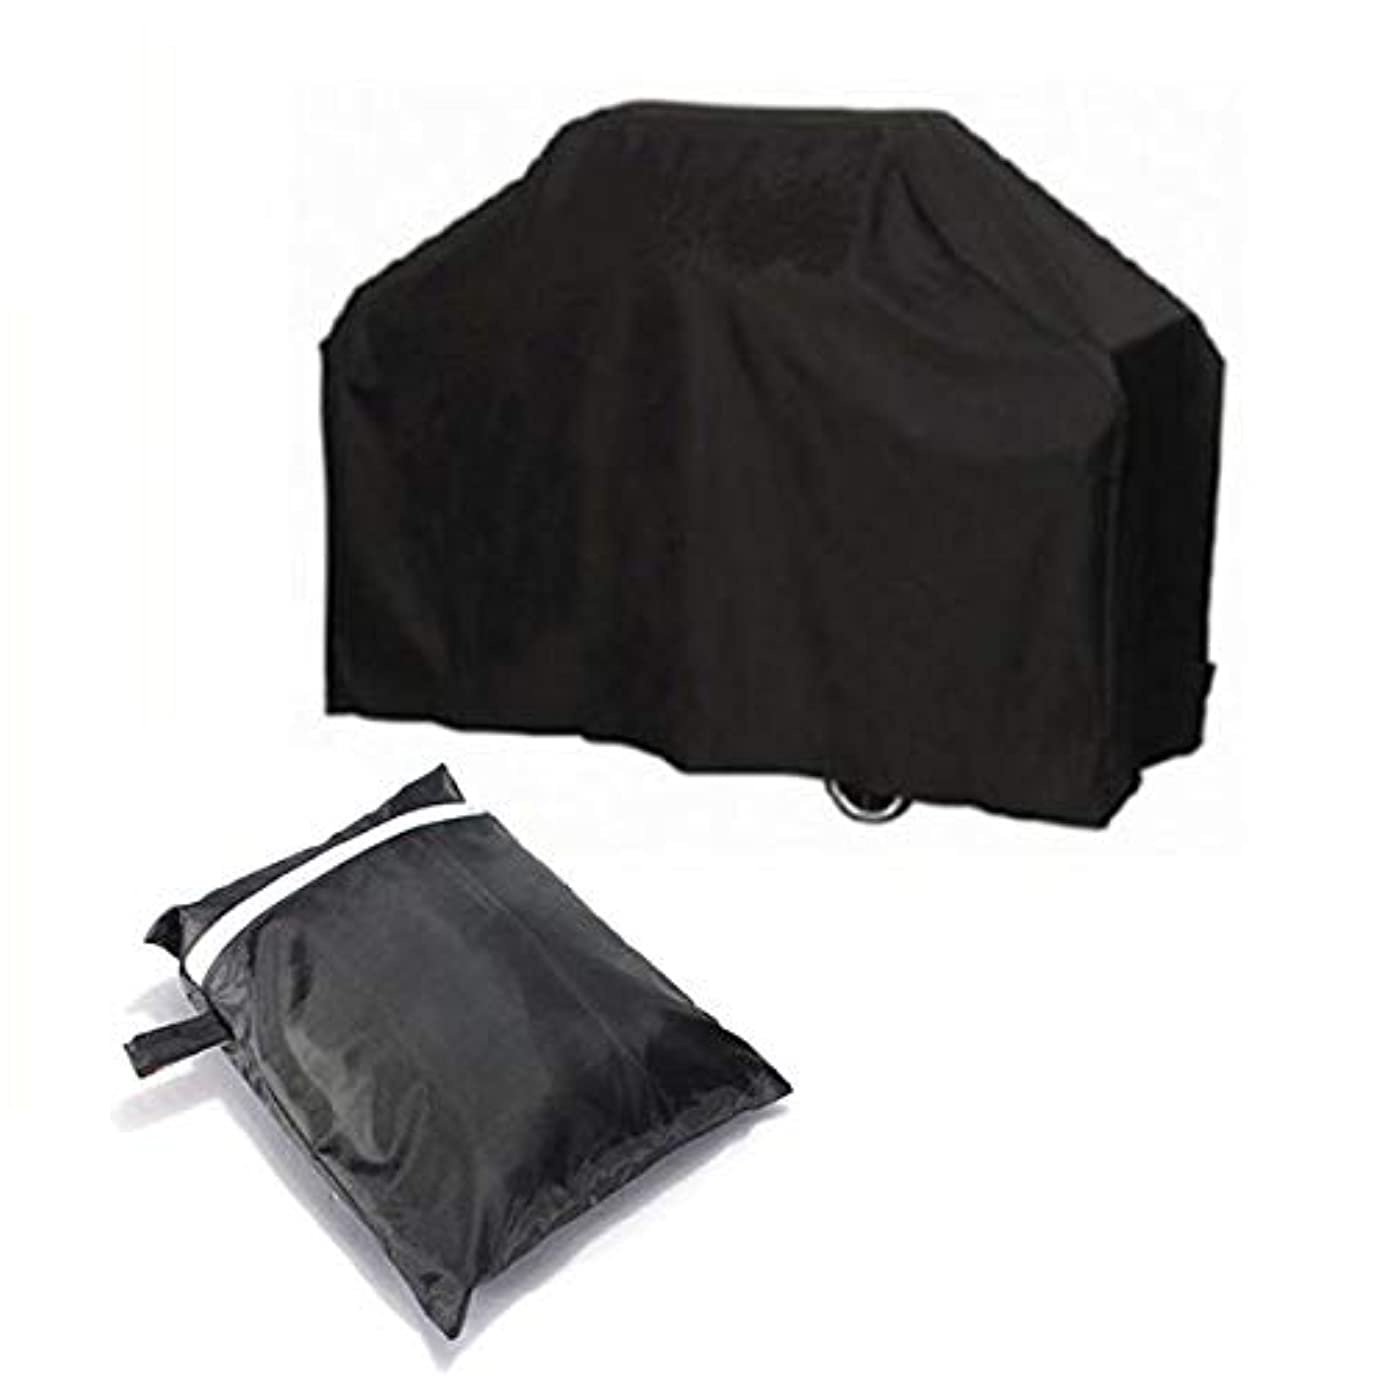 Grill Cover - Waterproof Bbq Electic Grill Cover Garden Proof Barbecue Protection Shield - Master Medium Coal Waterproof Brown Universal Material #2187 Lions Cover Elastic Covers Road Extra Phill